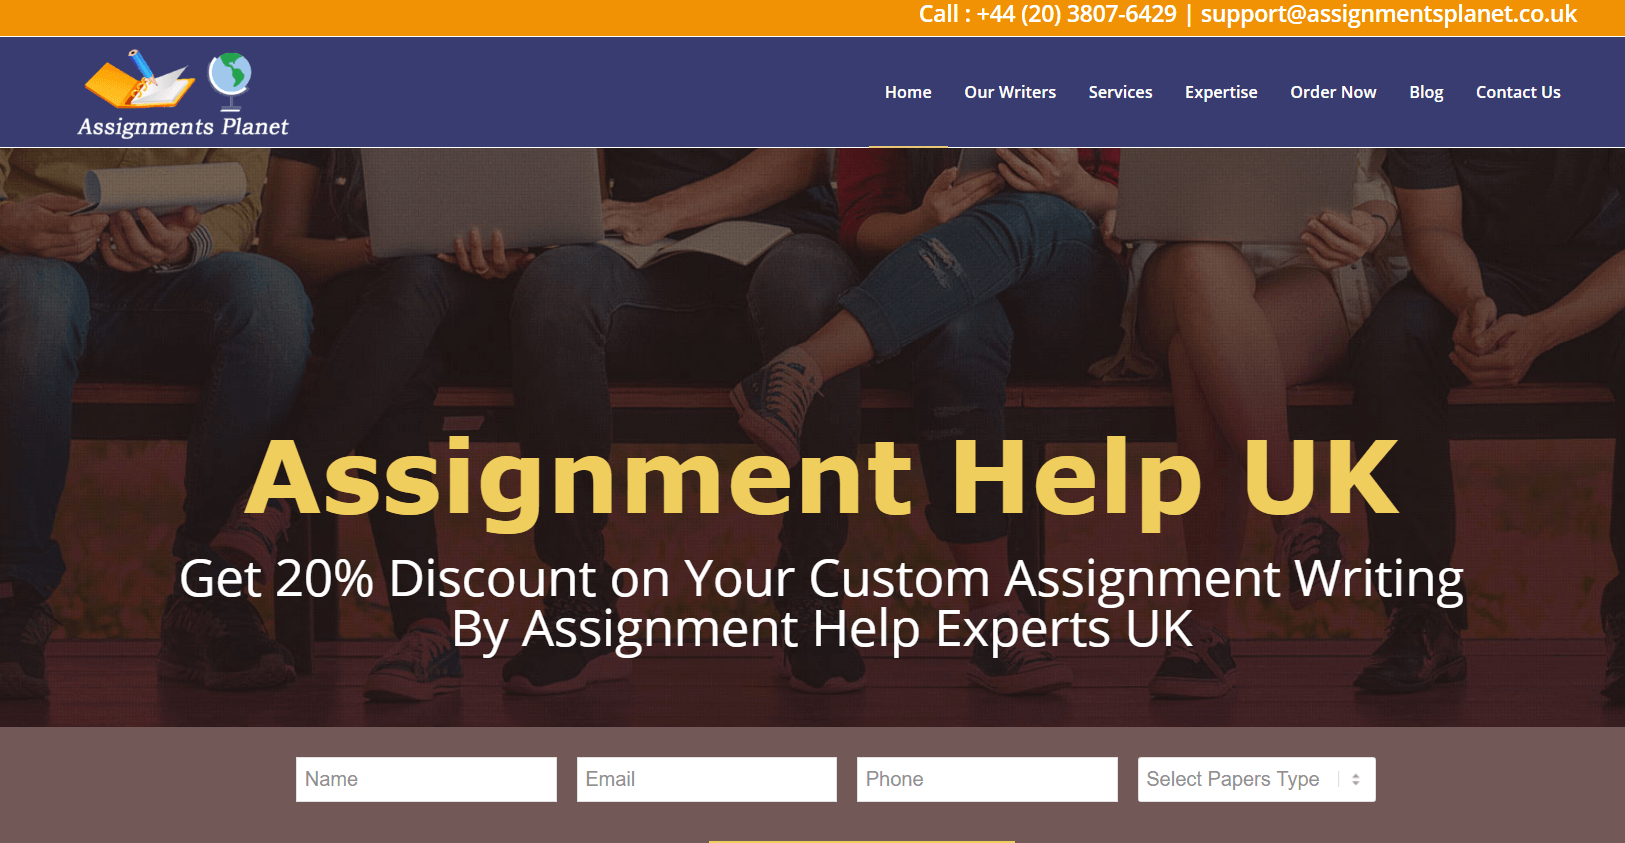 assignmentsplanet.co.uk review